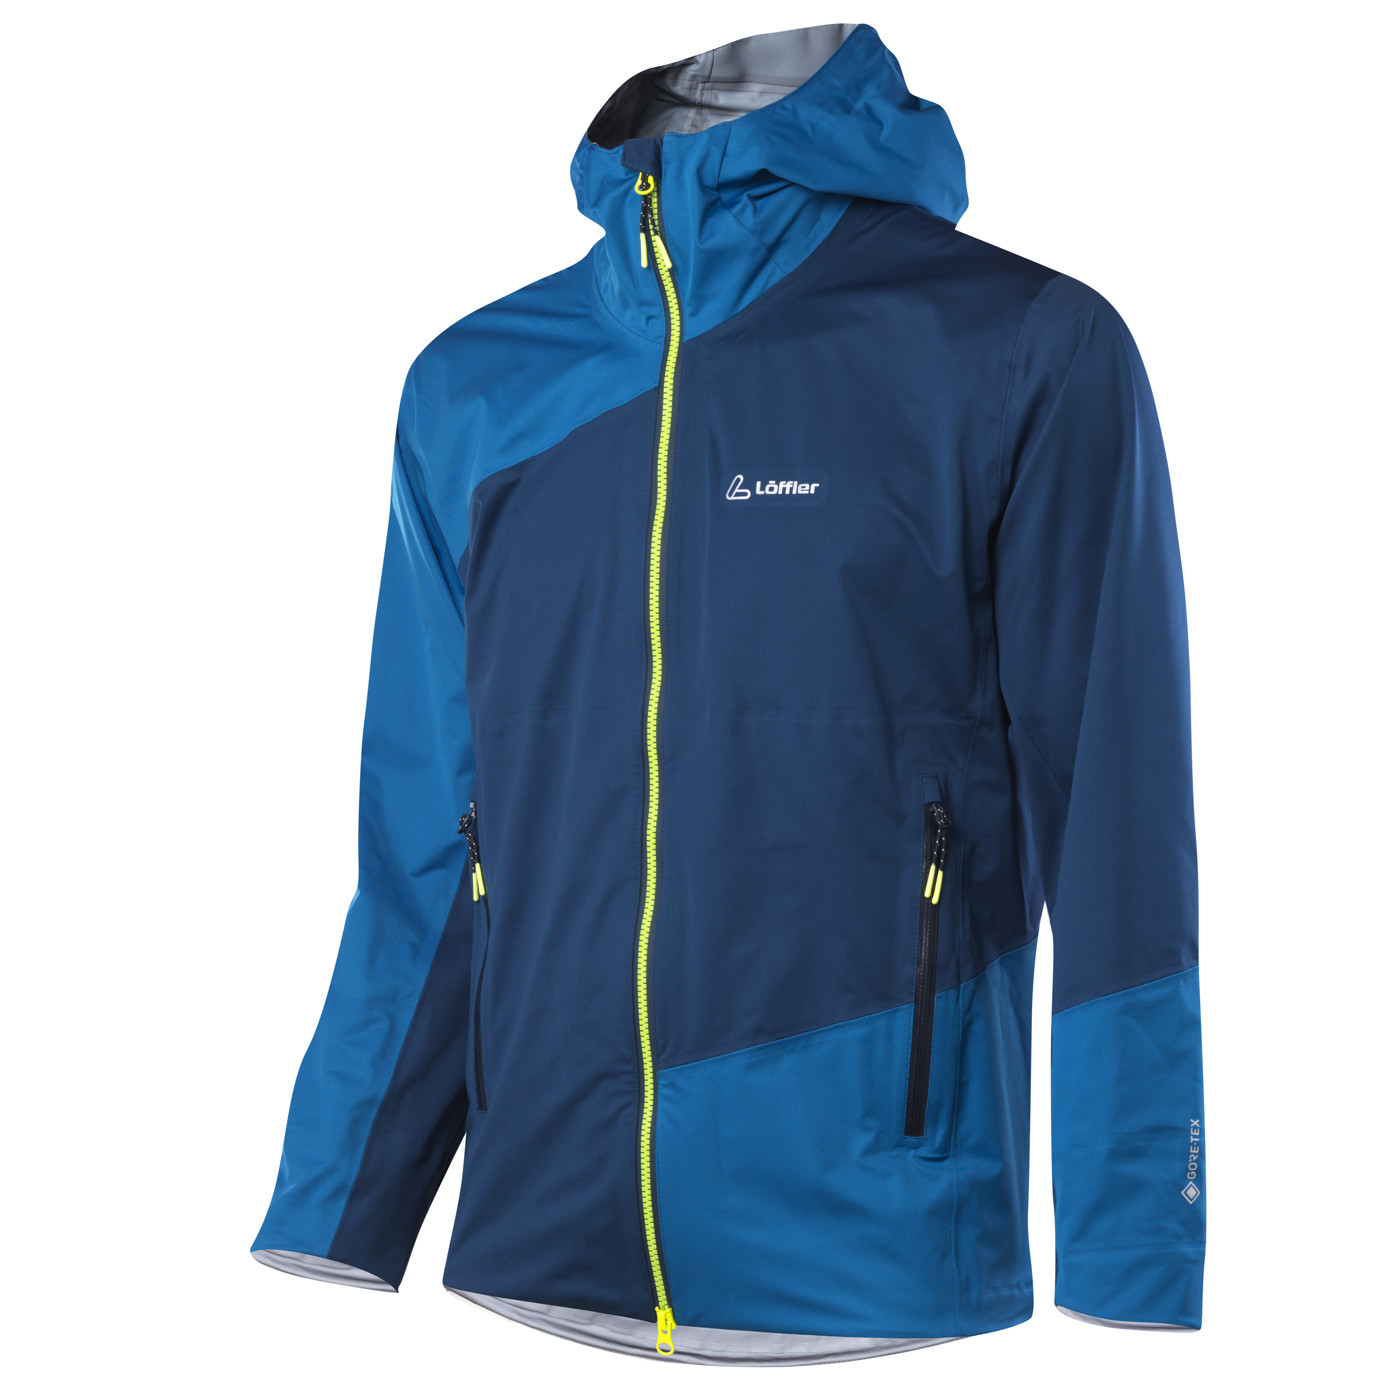 LÖFFLER M HOODED JACKET GTX ACTIVE - Herren